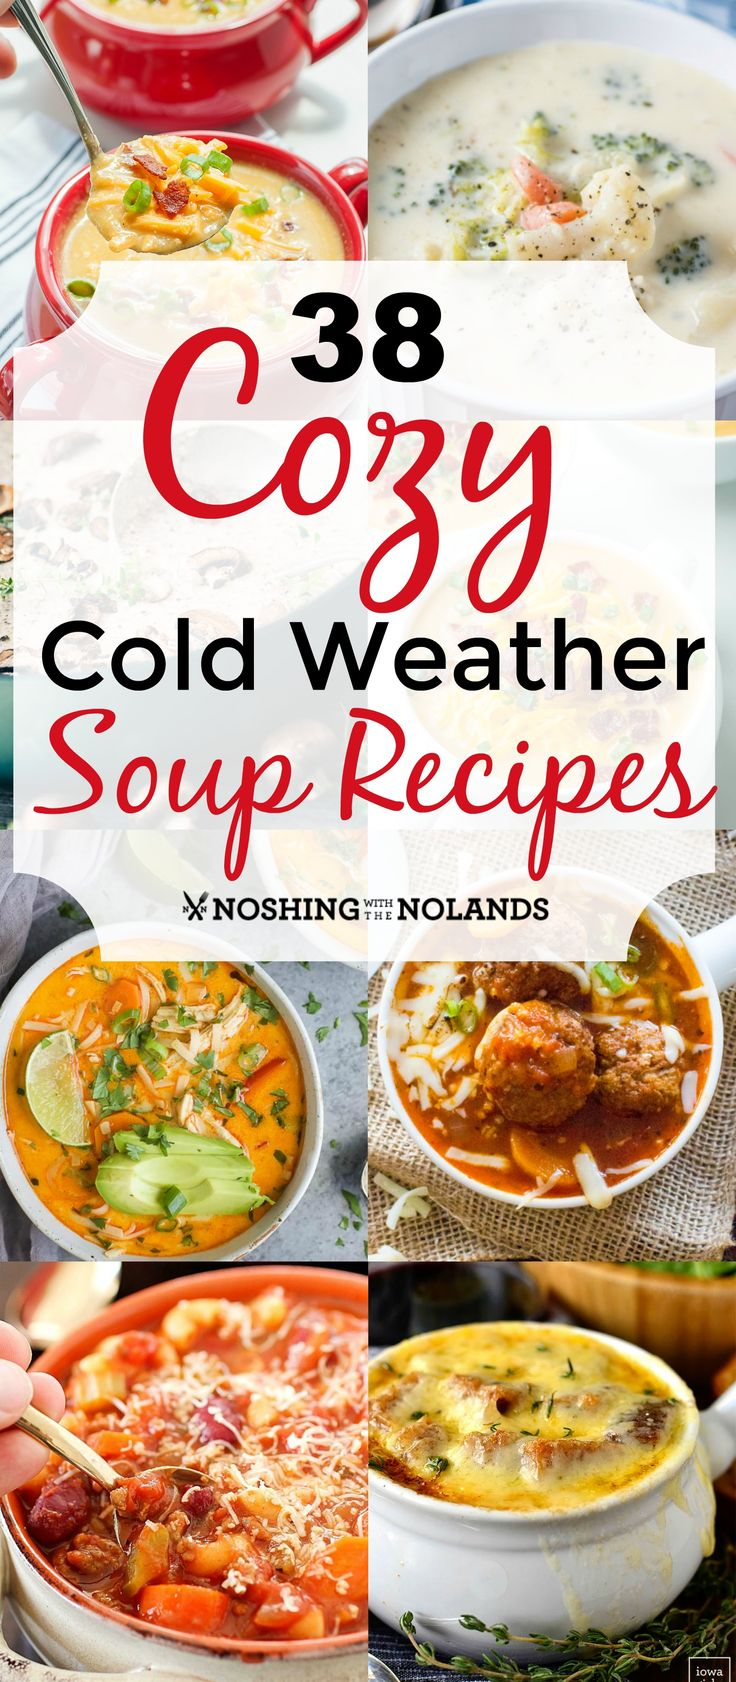 38 Cozy Cold Weather Soup Recipes by Noshing With The Nolands - Chase away the chills with any one of these comforting soups all season long!